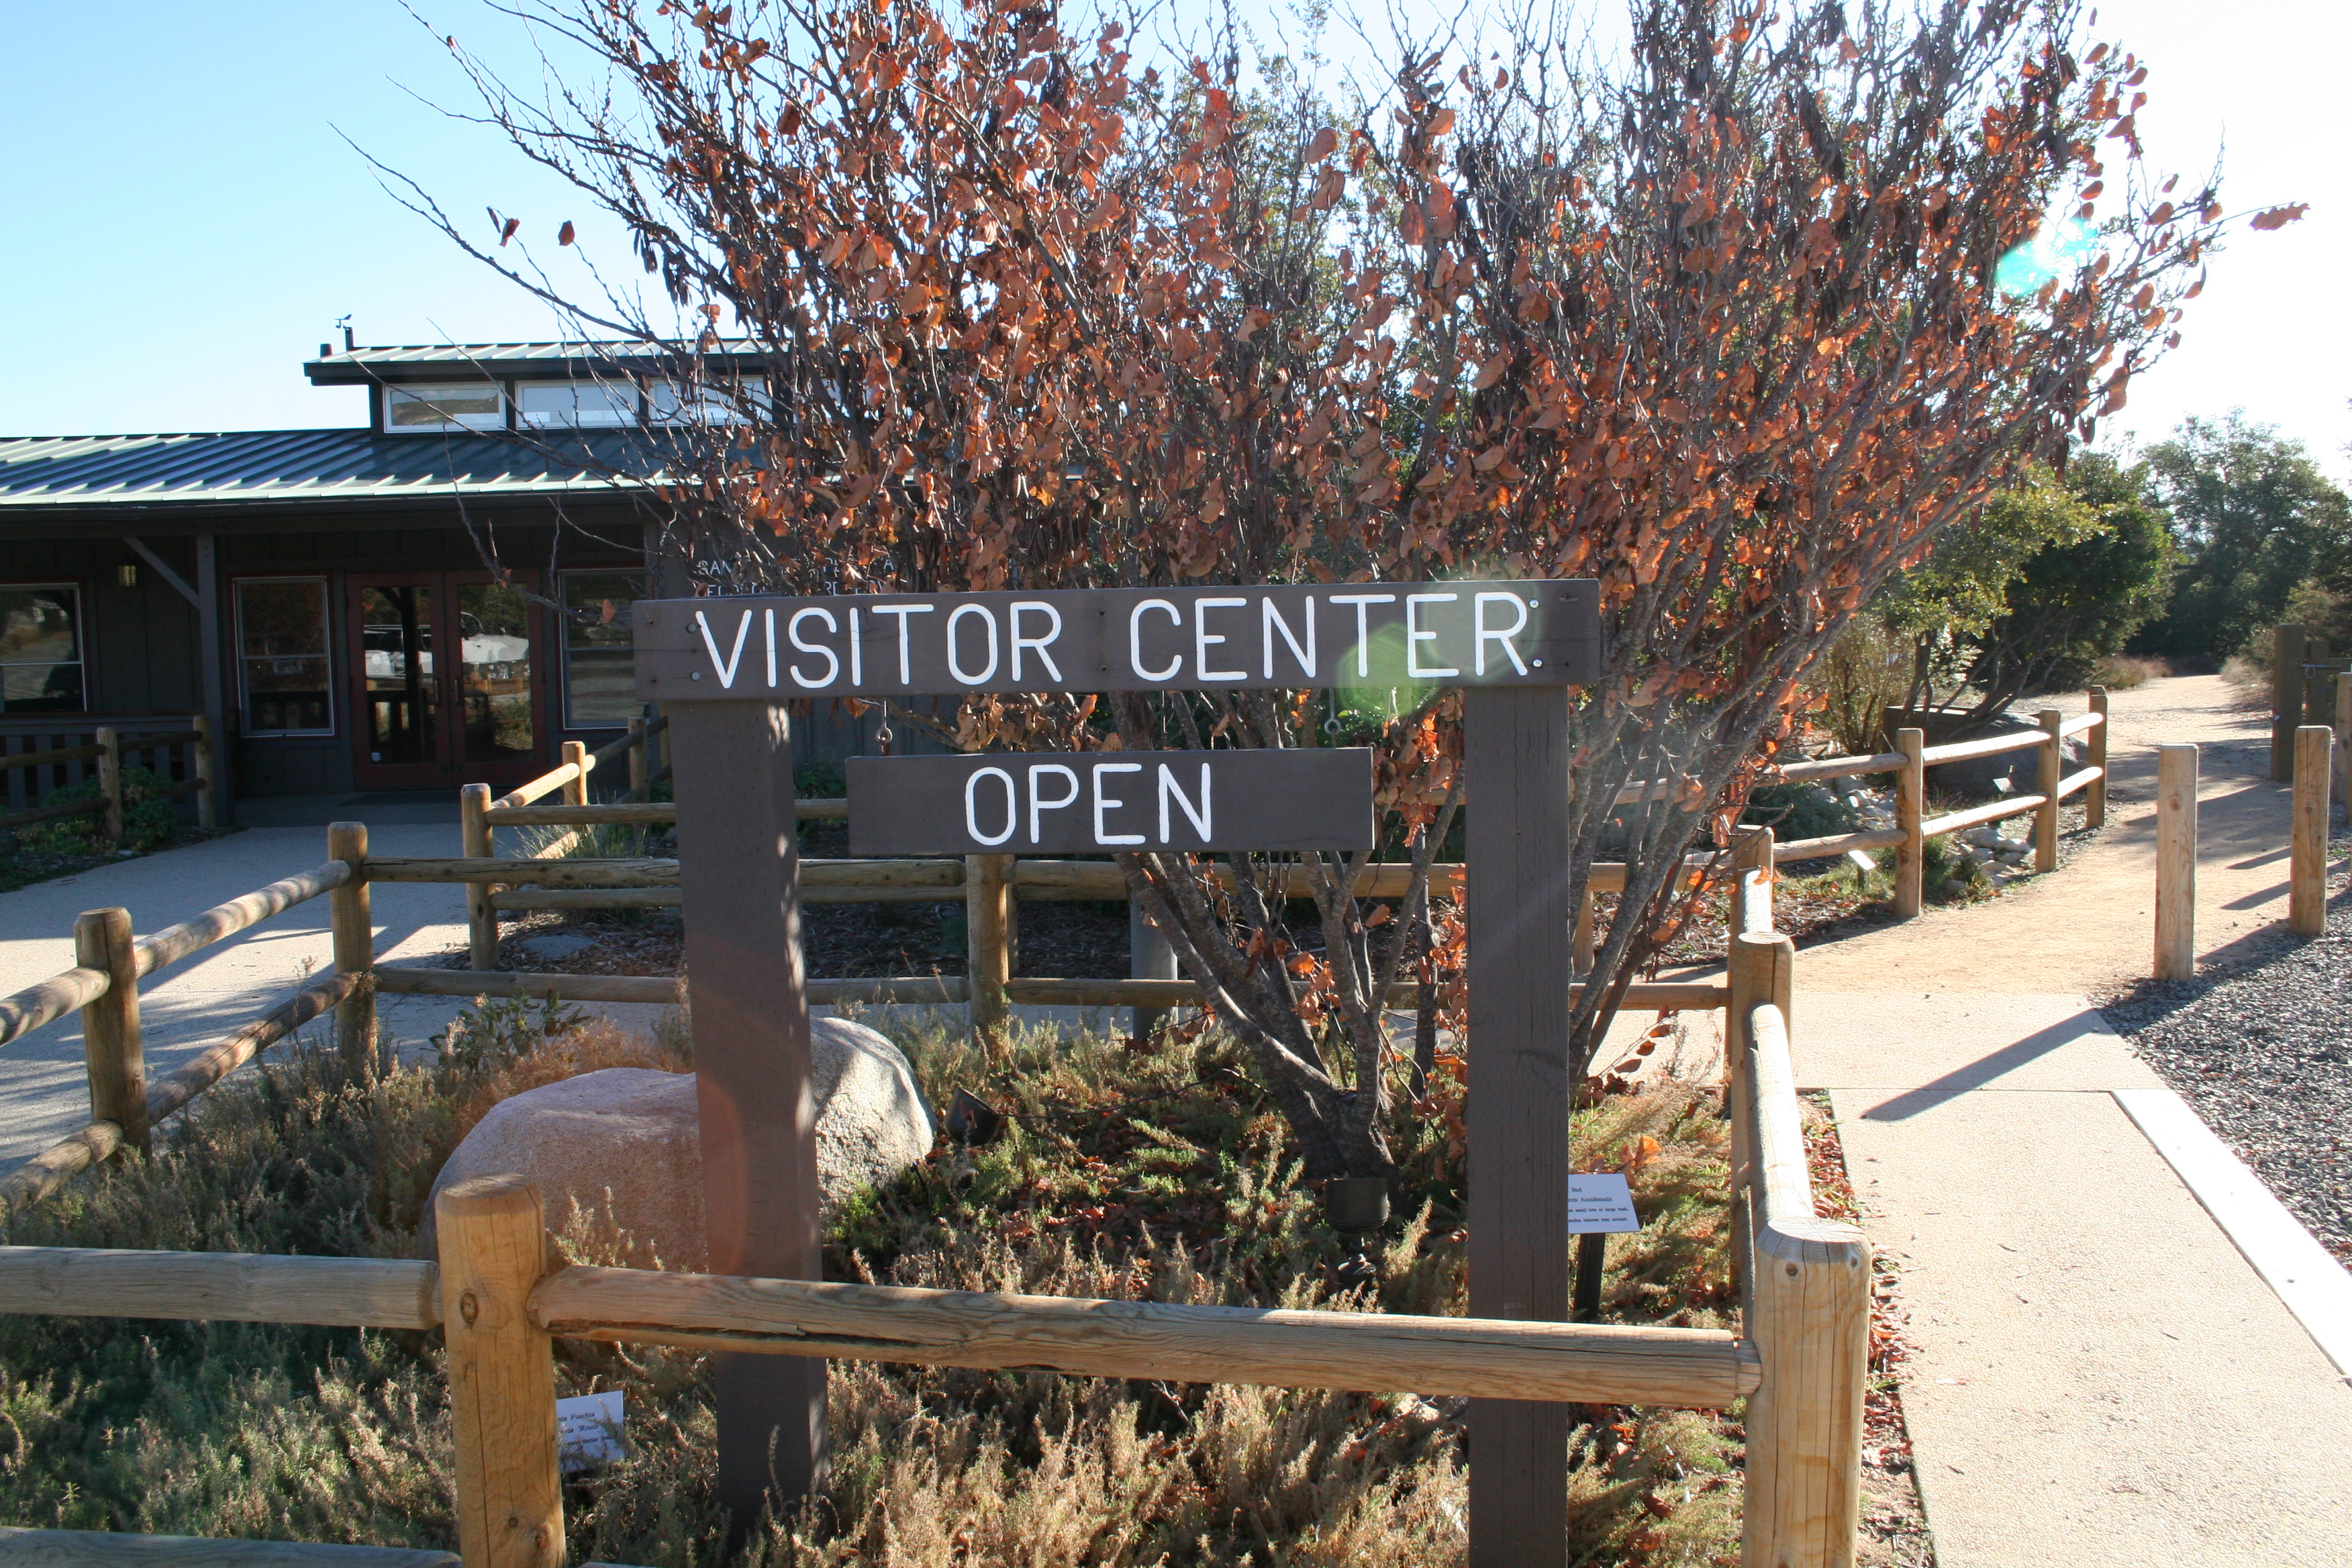 Visitor Center welcome sign